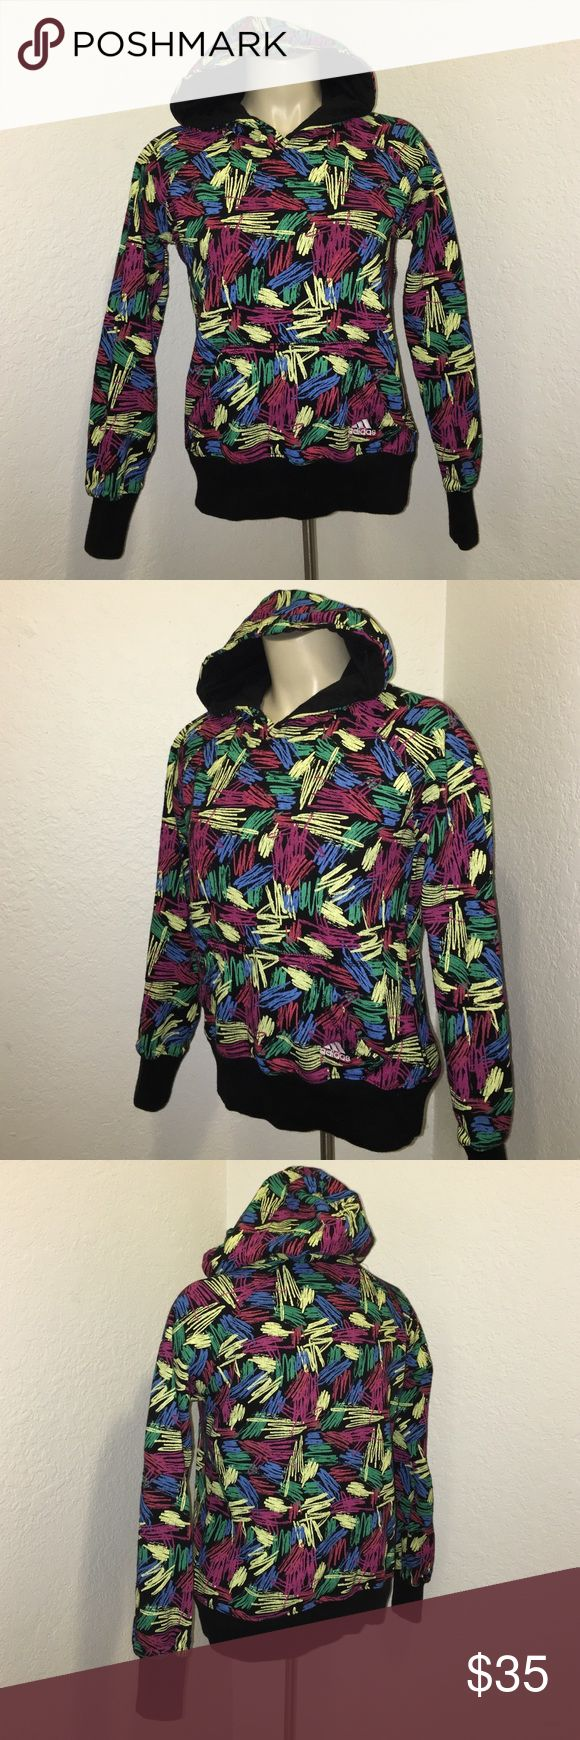 Adidas Black Scribble Print Hoodie Sweatshirt Super adorable adidas scribble print sweater hoodie. Size small. One Front pocket. Chic and stylish. Very warm and comfy! In great condition. Adidas Tops Sweatshirts & Hoodies